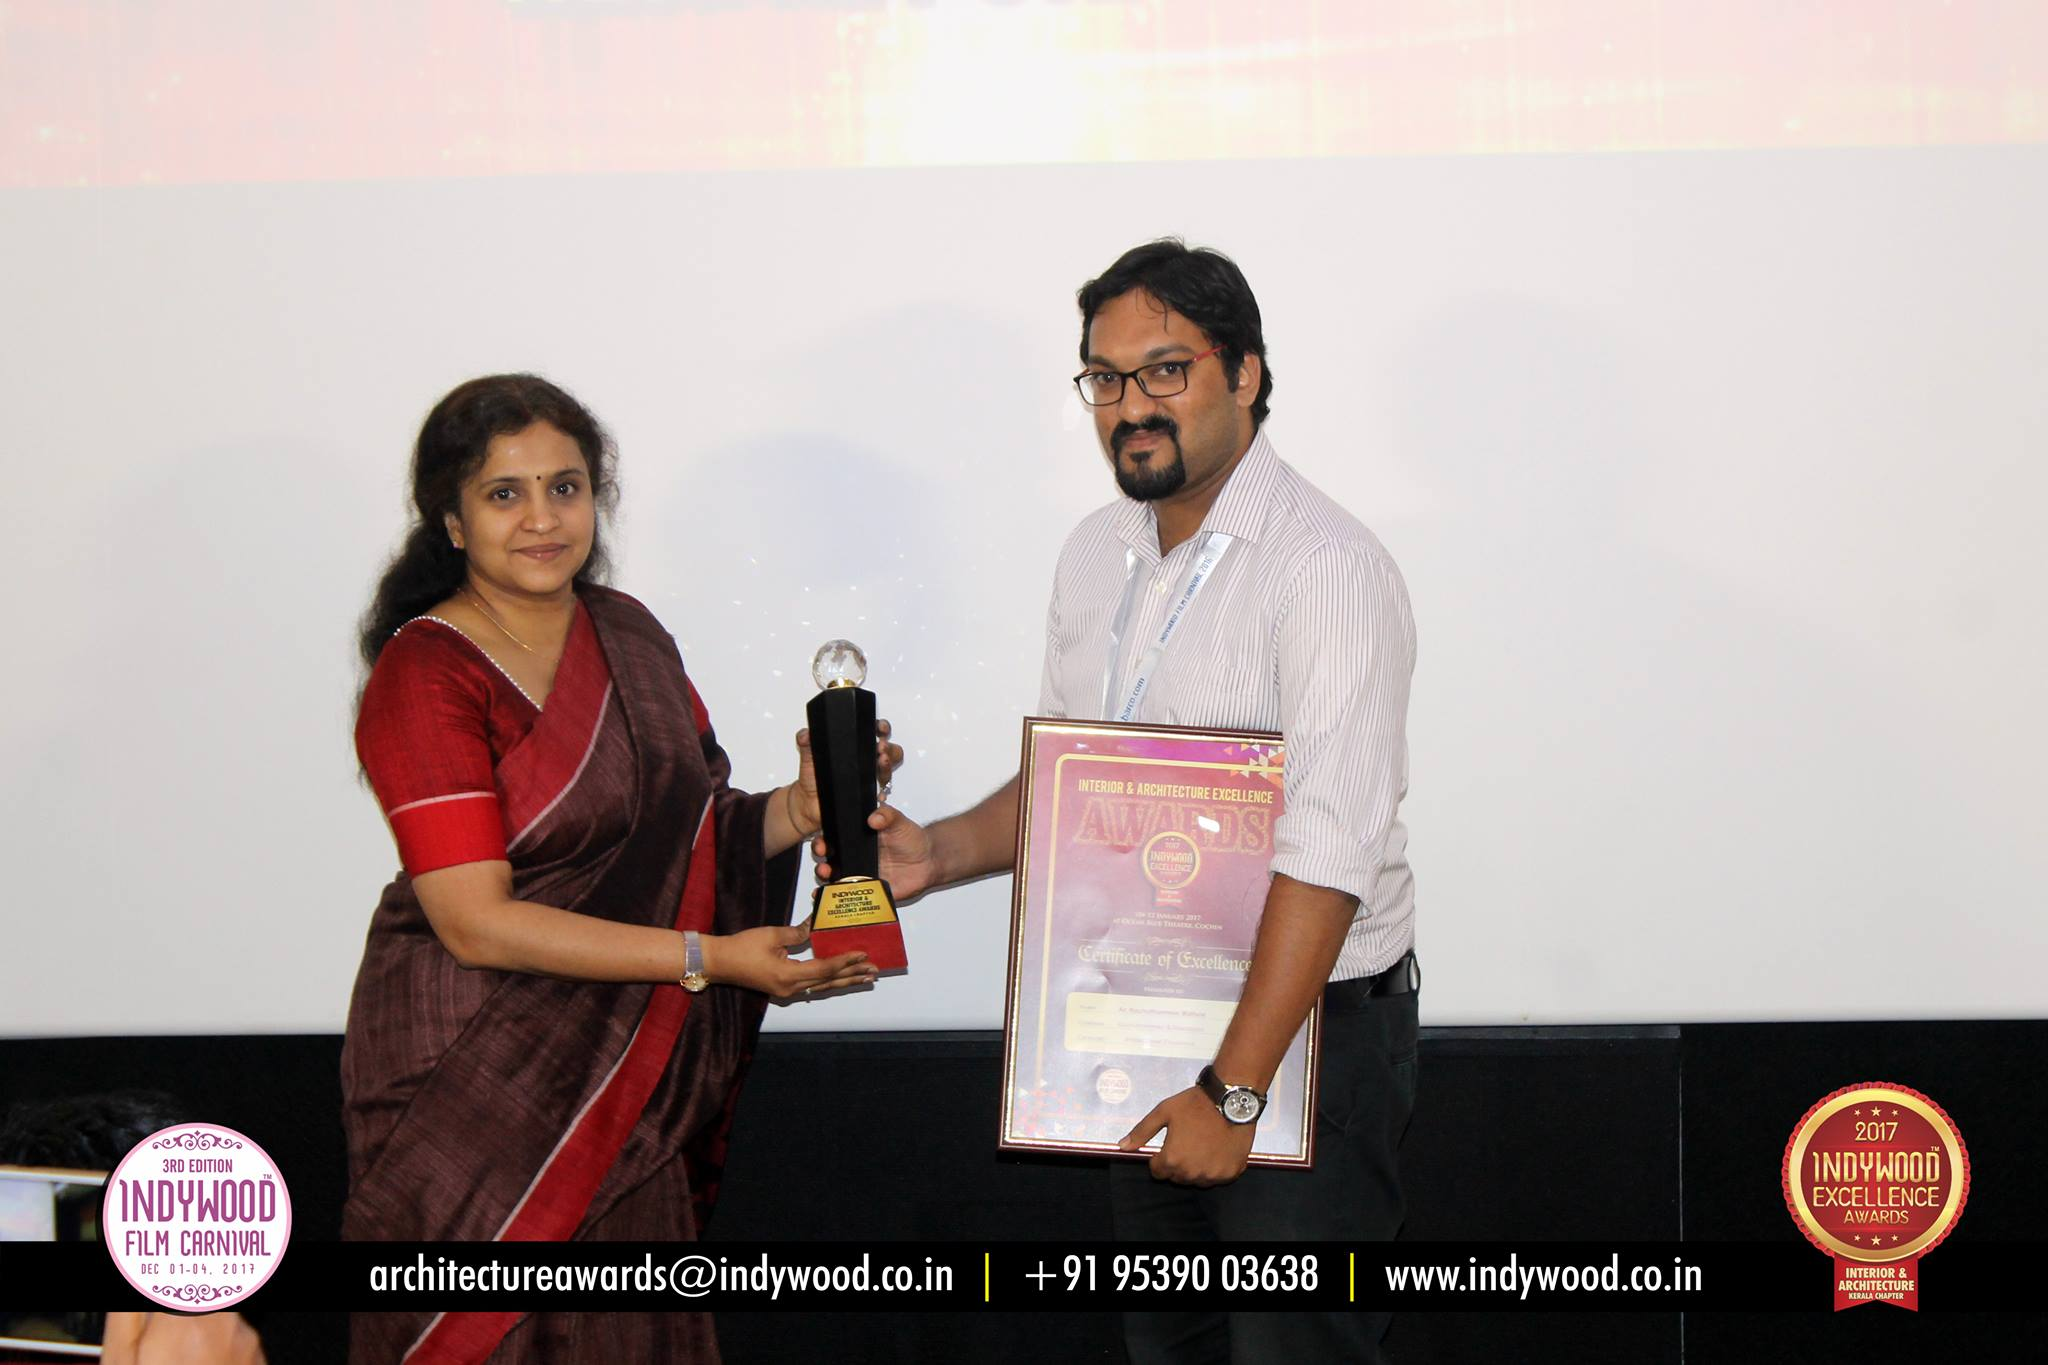 Indywood Interior & Architecture Excellence Awards - Kerala Chapter 2017 - Winner Joseph Oommen and Kochuthommen & Associates  Then Indywood Interior & Architecture Excellence Awards looks forward to honor individuals and firms whose works demonstrate a combination of talent, vision and workmanship thereby creating successful and enduring systems and enterprises. The awards honor works that include residential projects and interiors, commercial projects and Interiors, restaurant, workspaces, retail interiors, public / institutional projects etc.